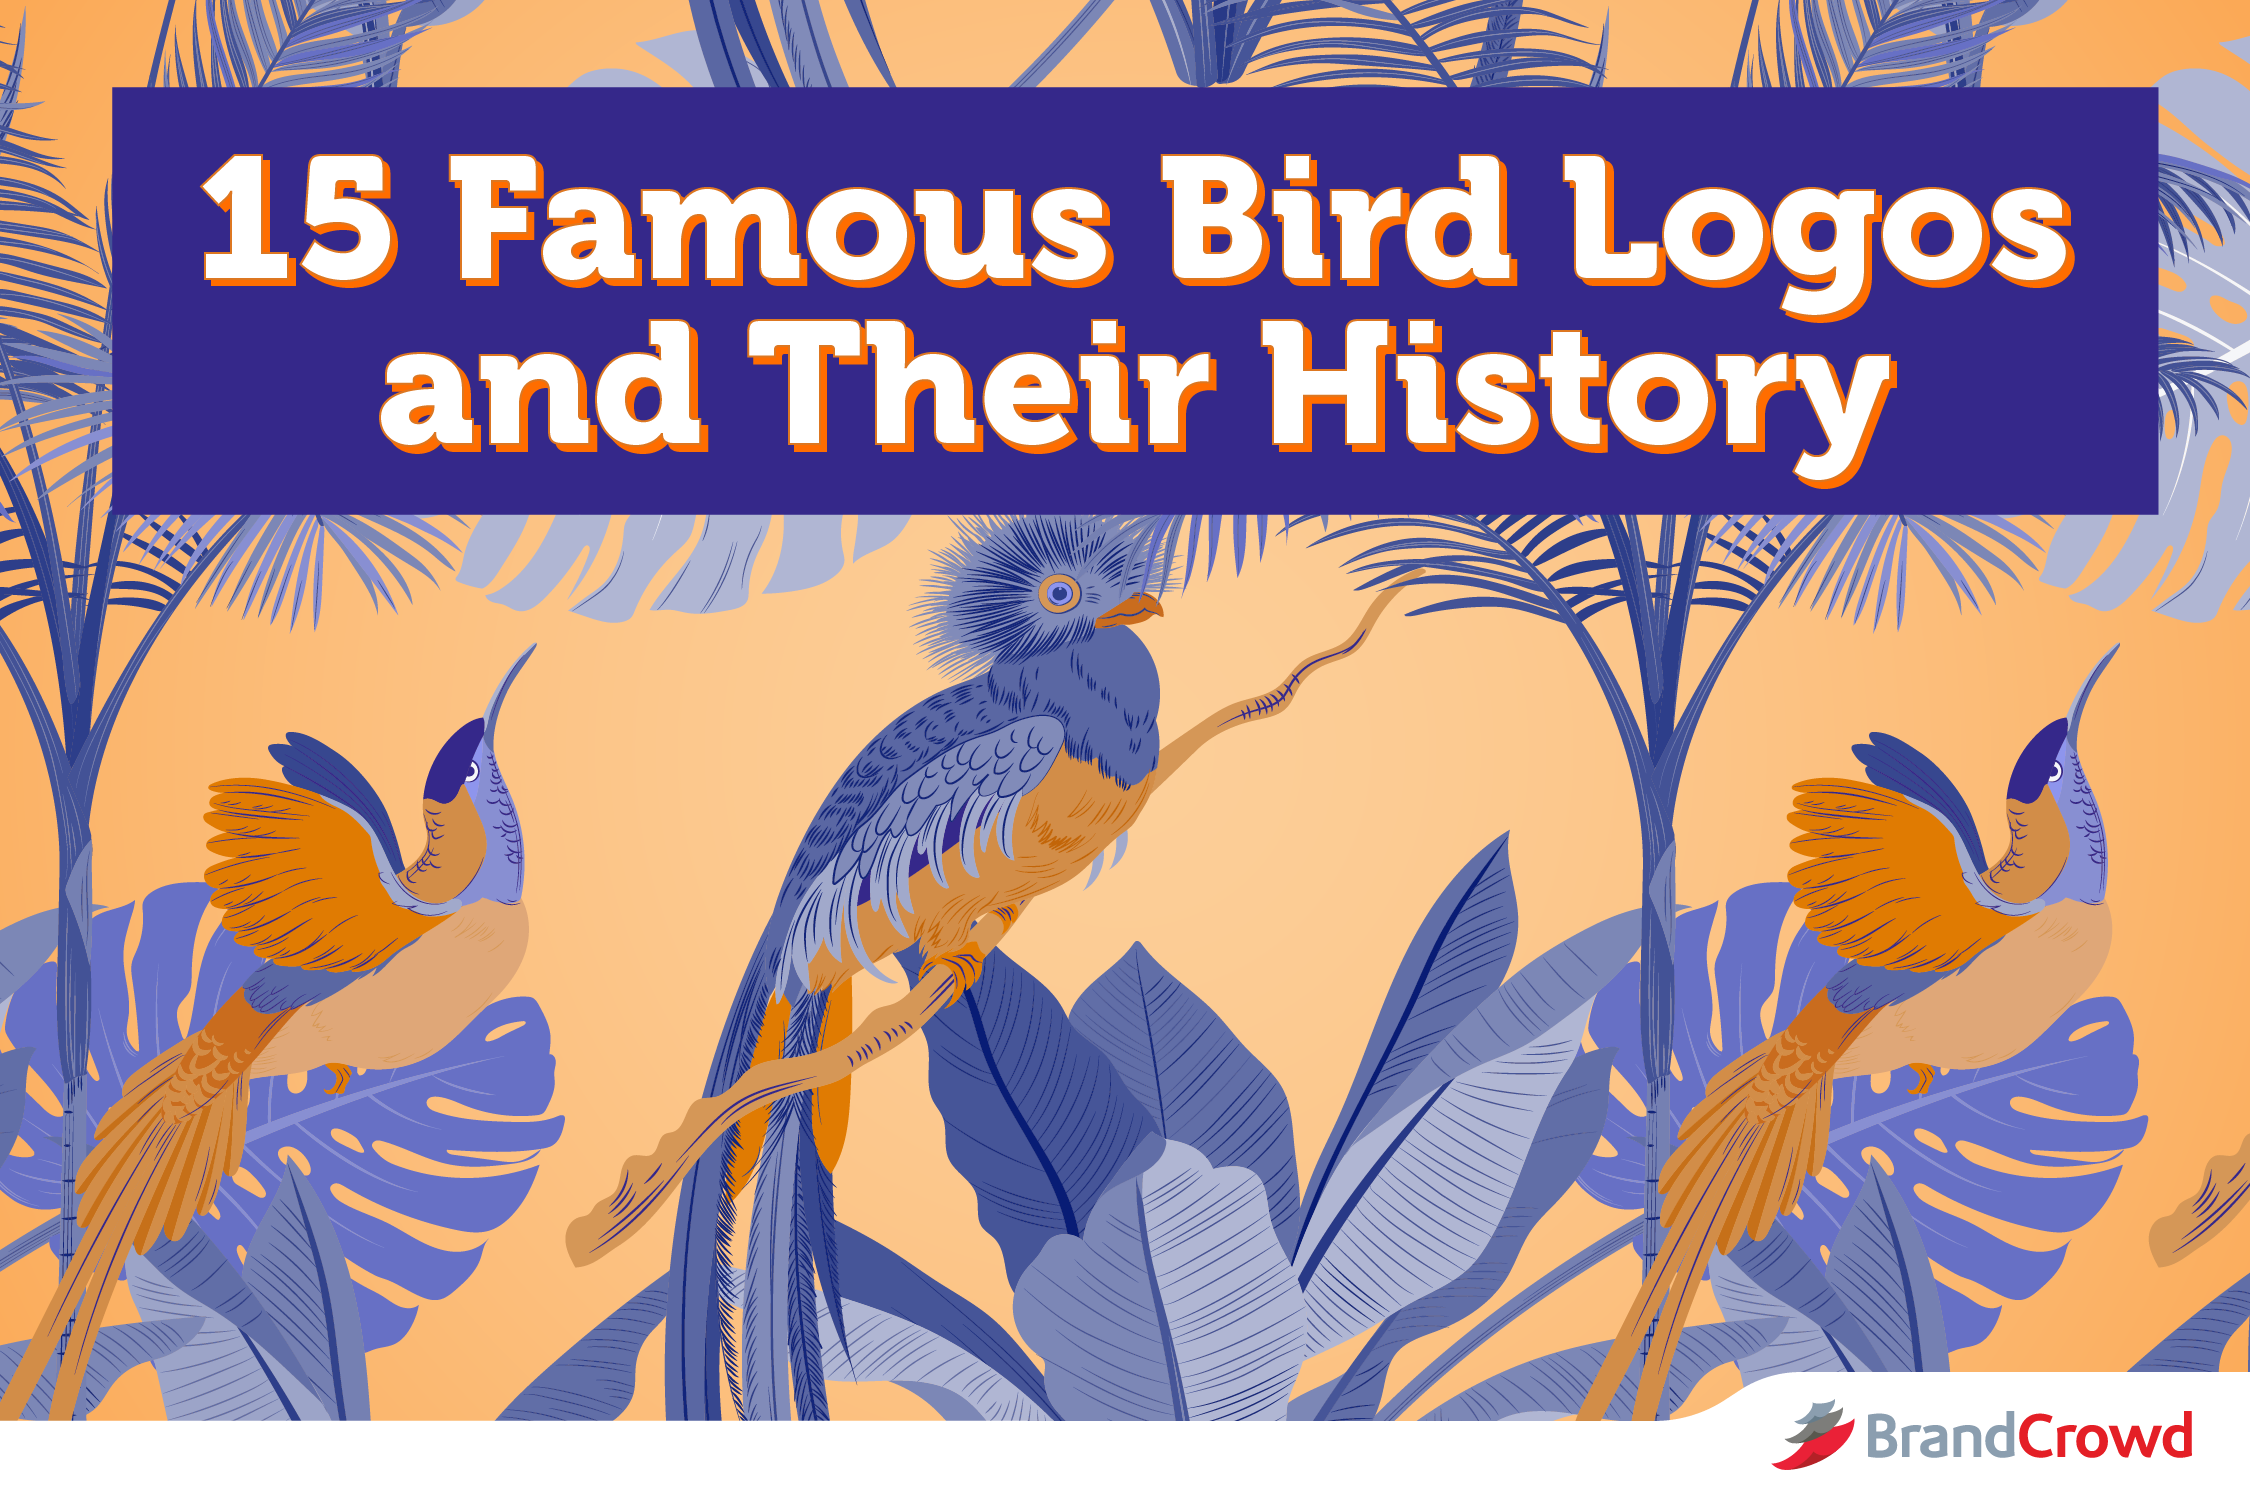 a-group-of-birds-sitting-on-branches-with-a-text-that-reads-15-famous-bird-logos-and-their-history